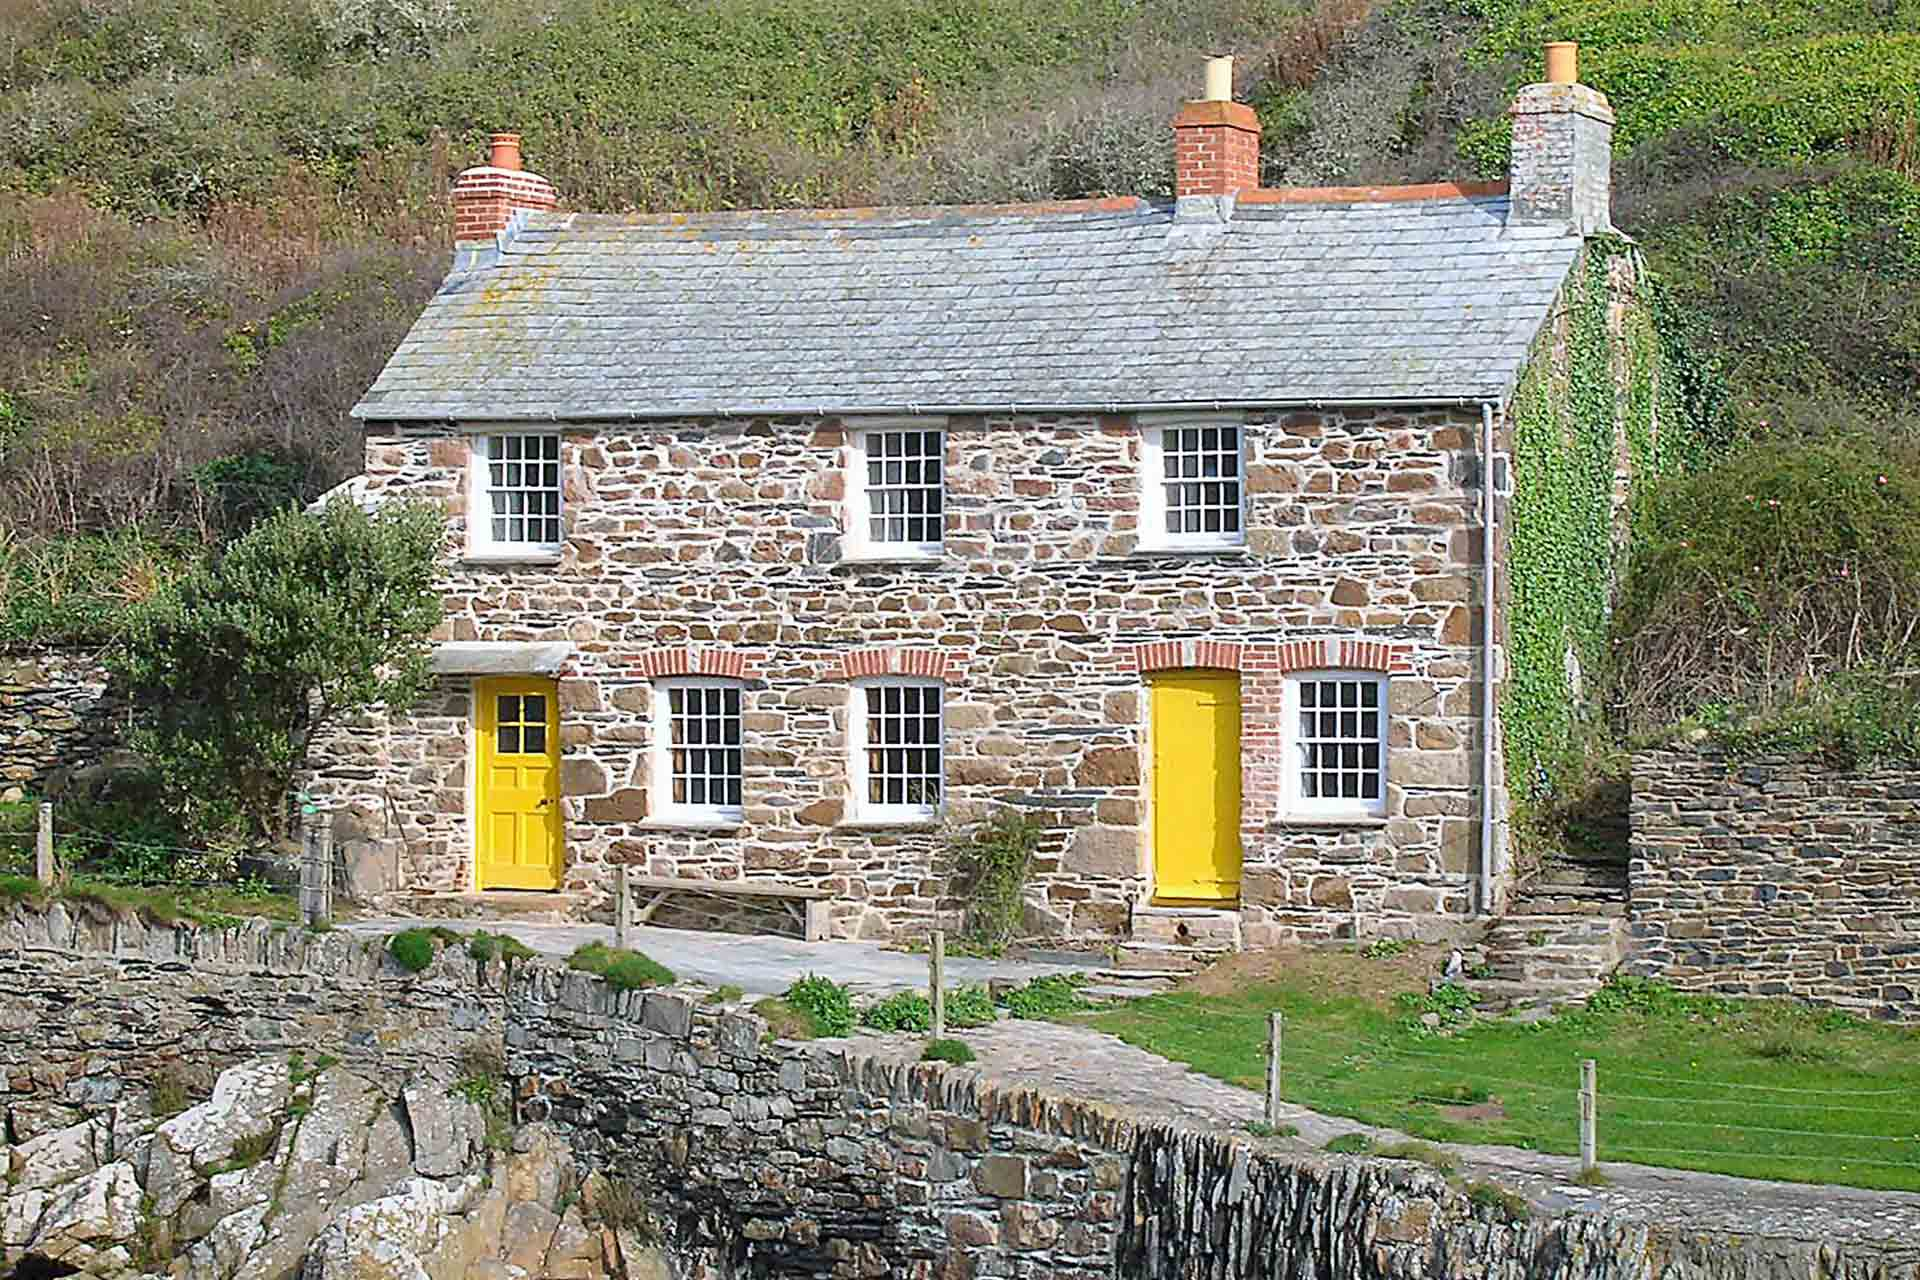 Cornish Lime - The Trusted Lime Experts (Lime Putty and